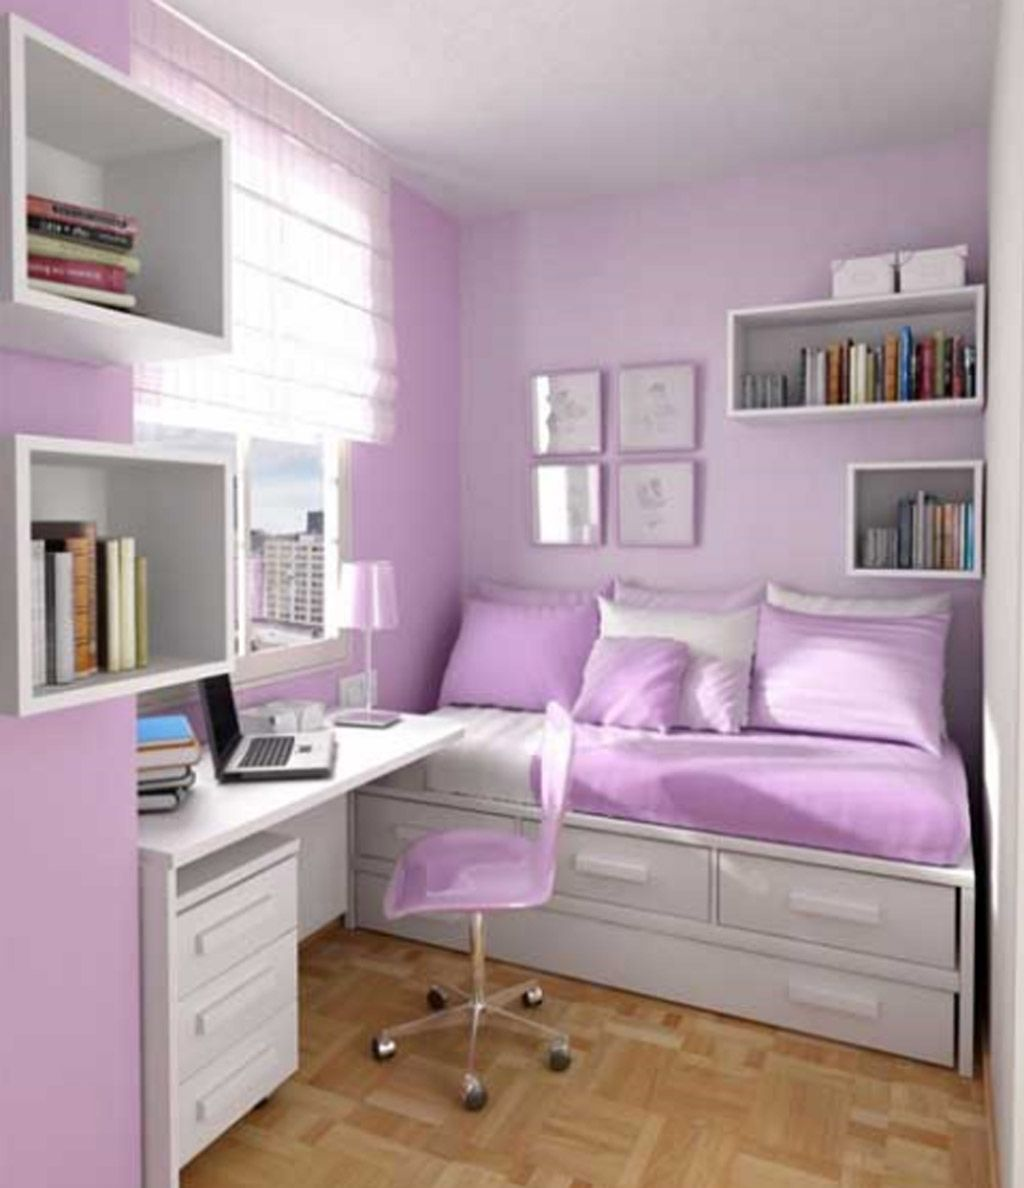 Bedroom ideas for girls purple - Cute Bedroom Ideas For Teenage Girls Best Interior Design Blogs Fashion Pinterest